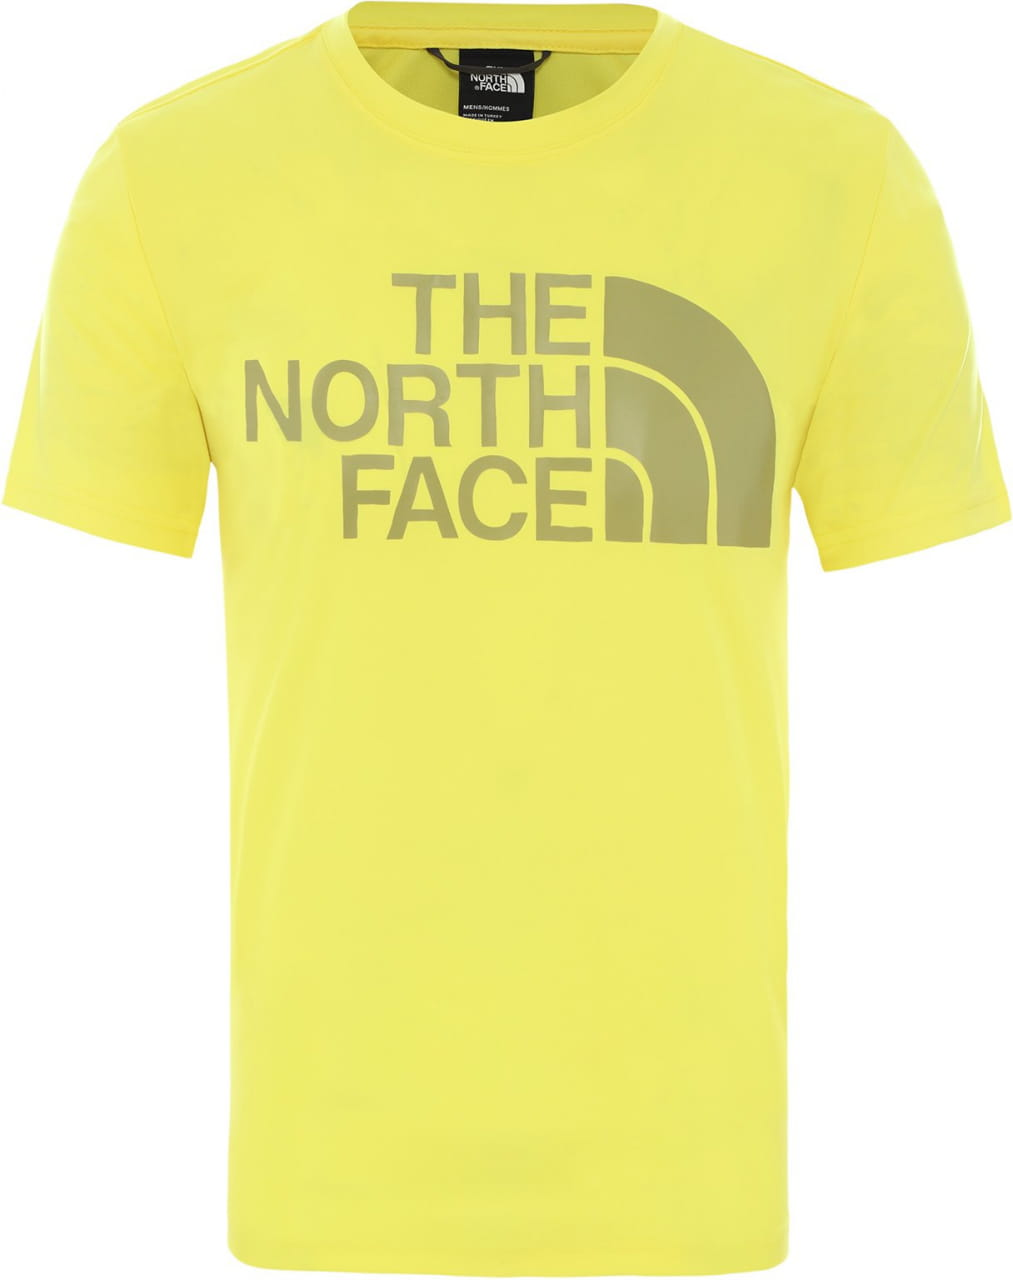 T-Shirts The North Face Men's Reaxion Easy T-Shirt